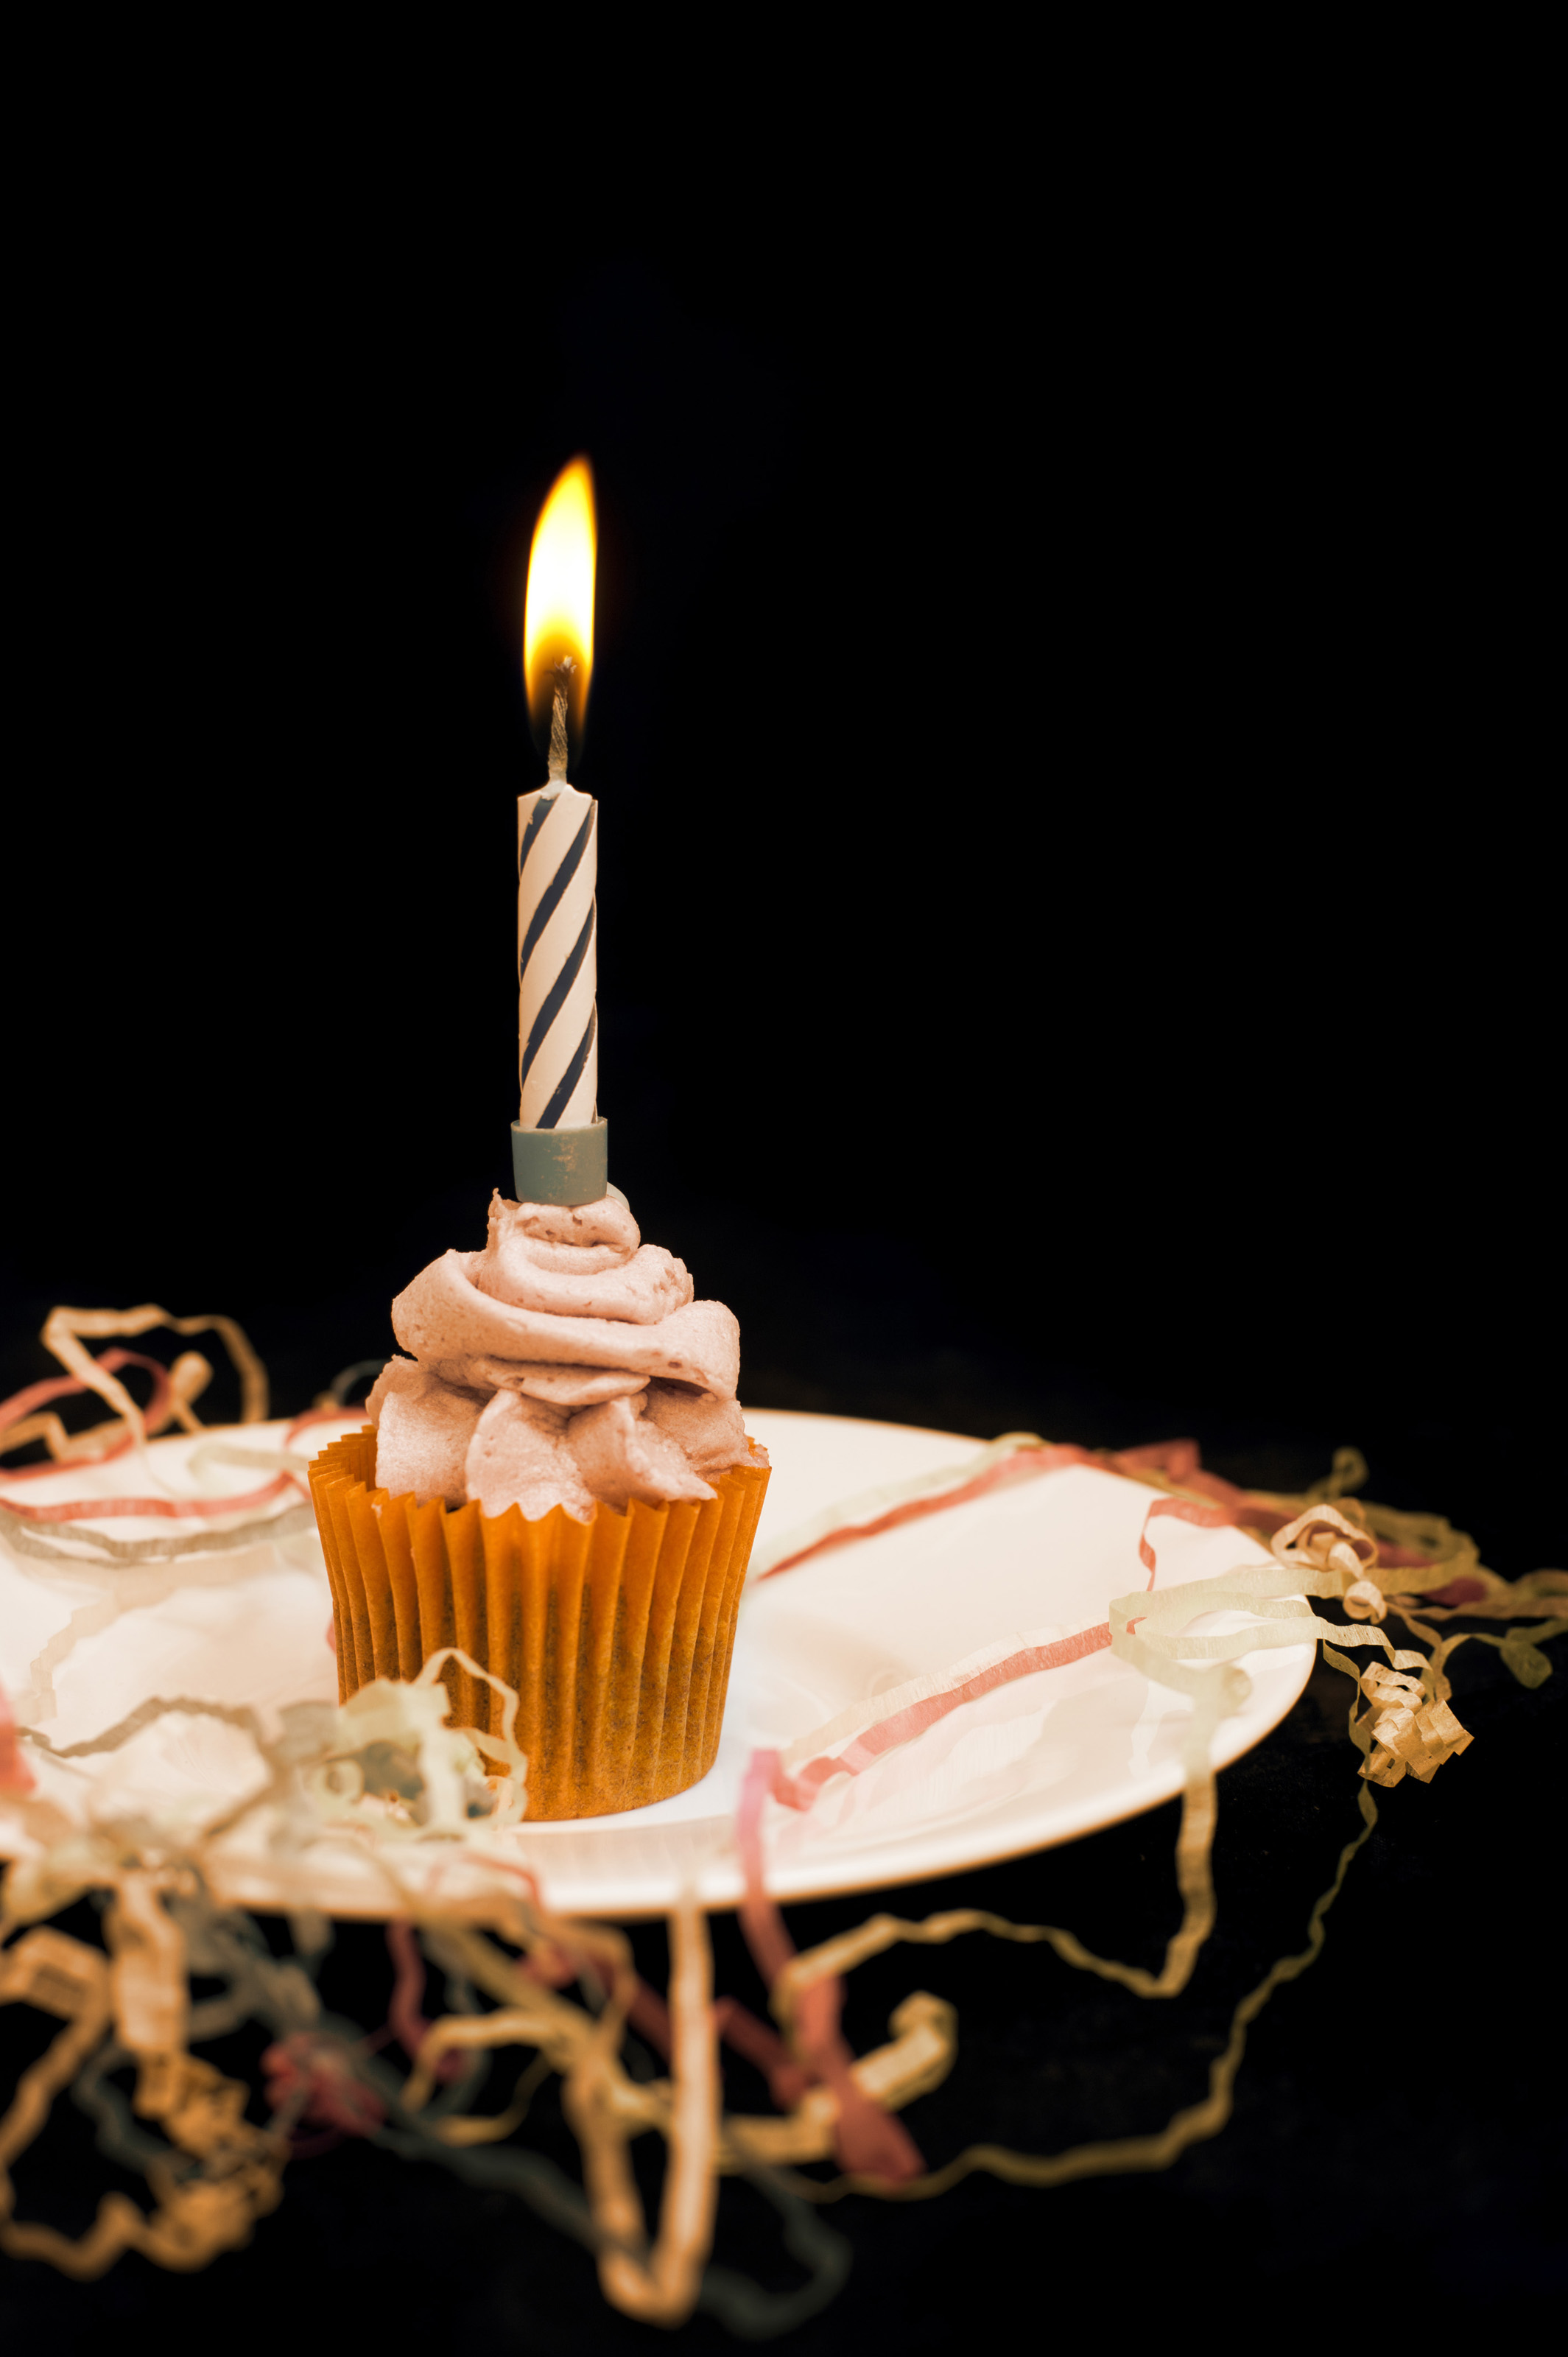 Burning candle on an orange cupcake-6076 | Stockarch Free ...